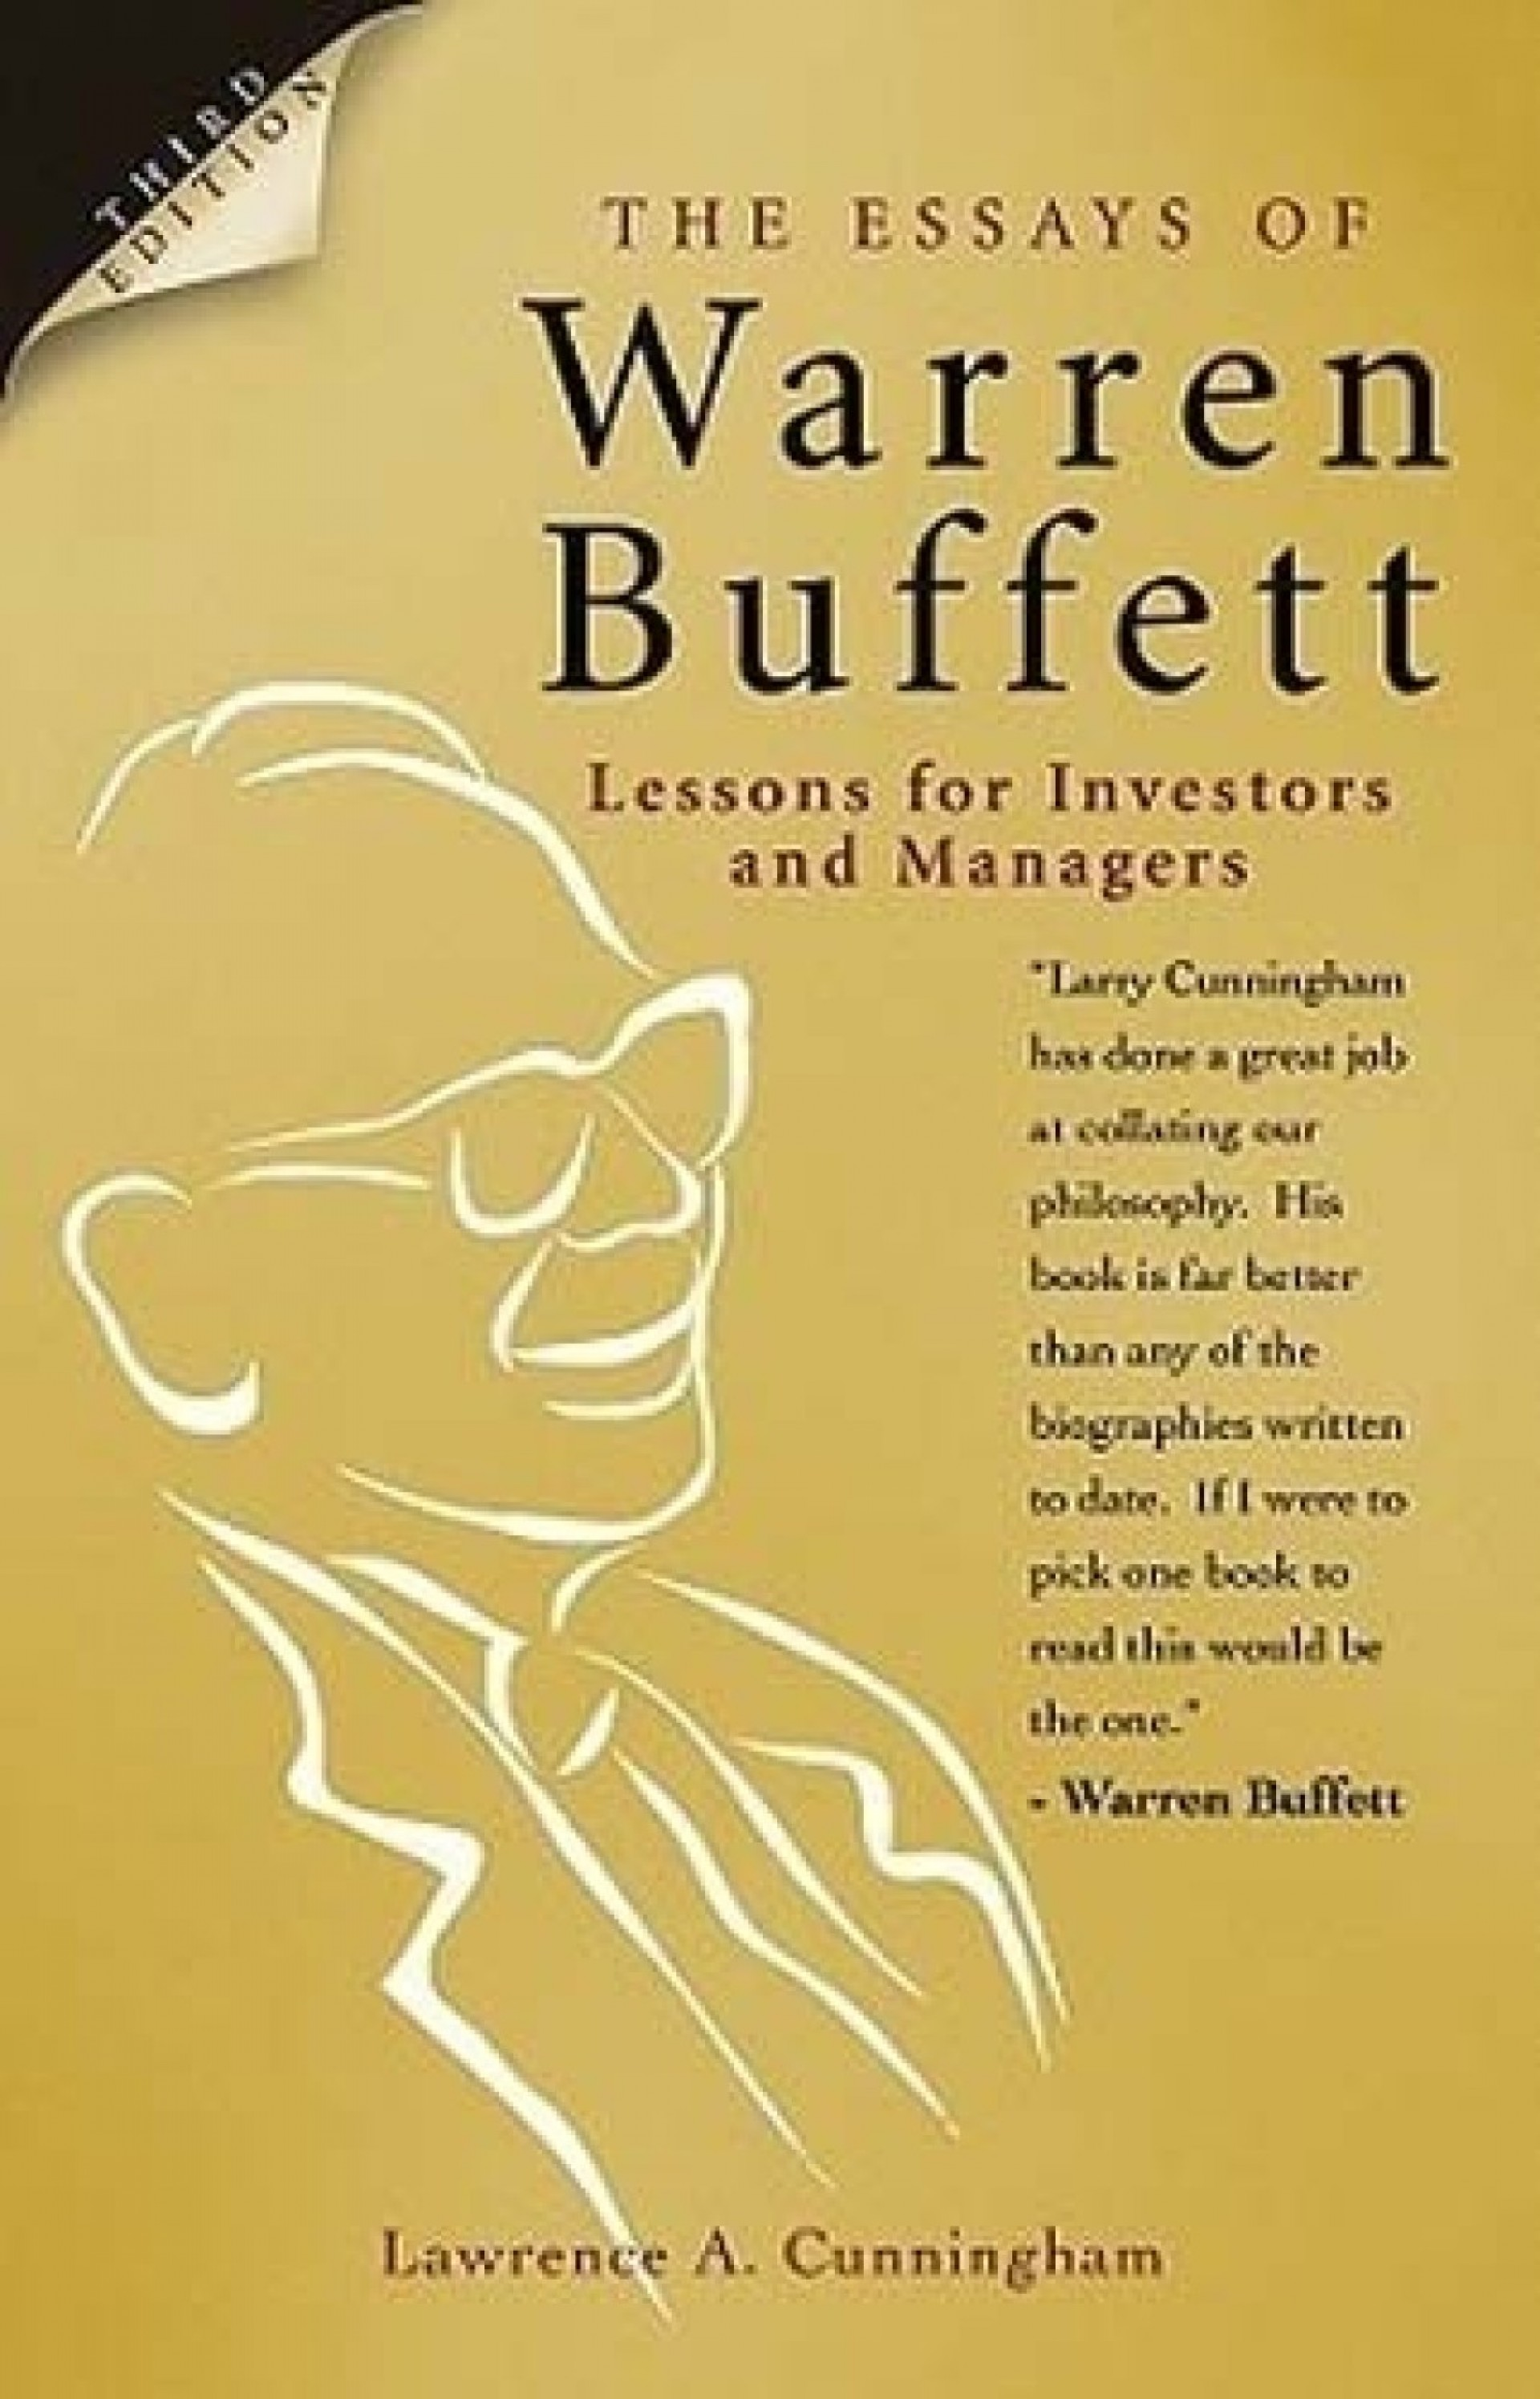 020 The Essays Of Warren Buffett Lessons For Investors And Managers Original Imaefwkrmxazxvdeq90 Essay Stirring Pages Audiobook Download Summary 1920